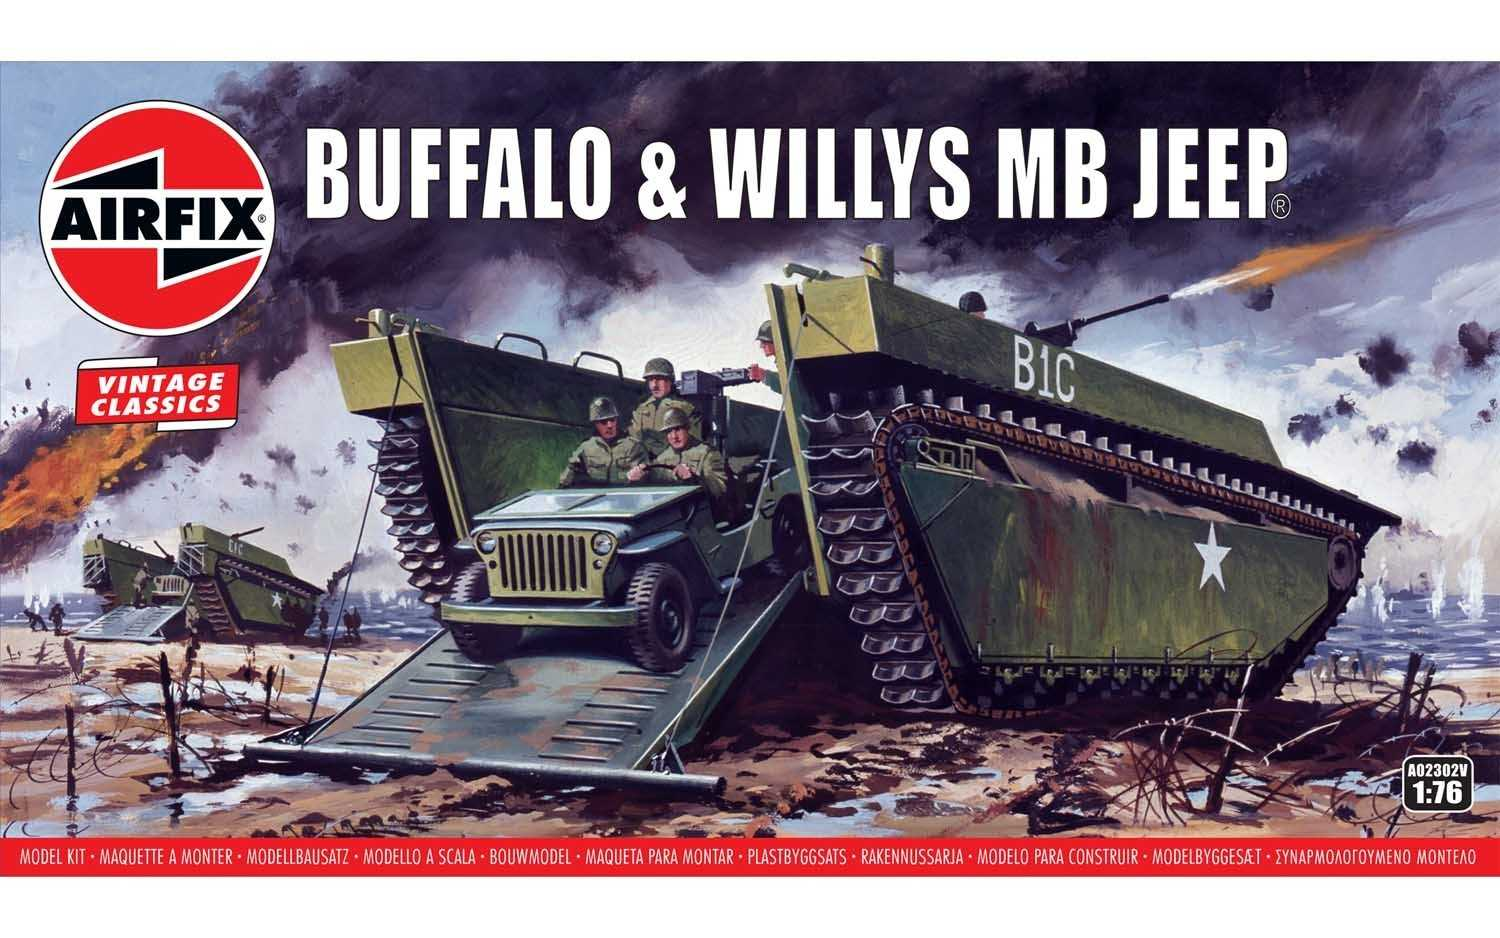 1:76 Buffalo Willys MB Jeep (Classic Kit VINTAGE)